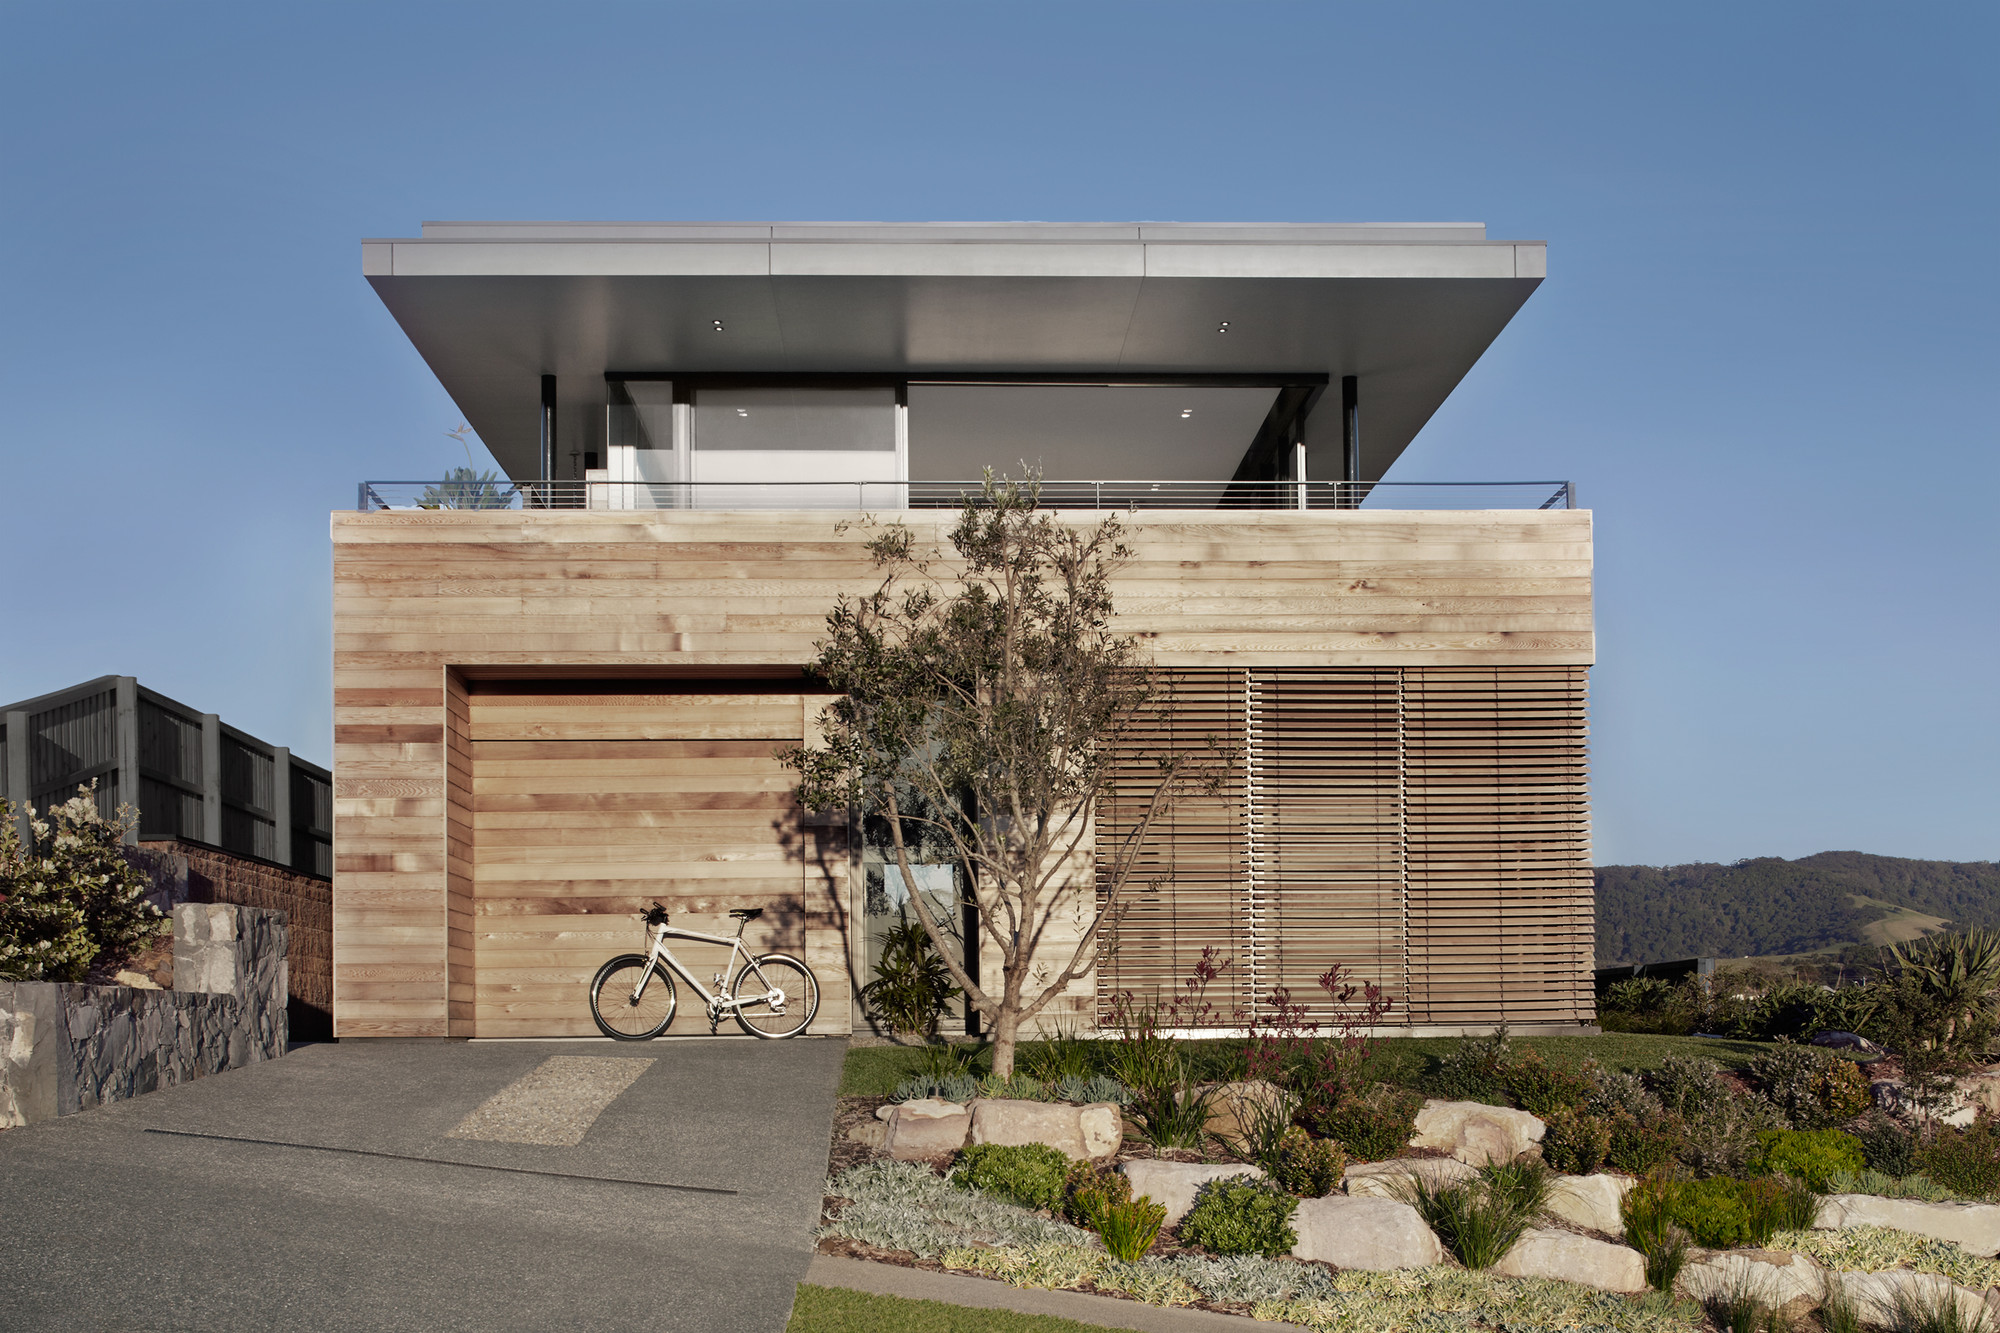 Lamble Residence / Smart Design Studio, © Sharrin Rees